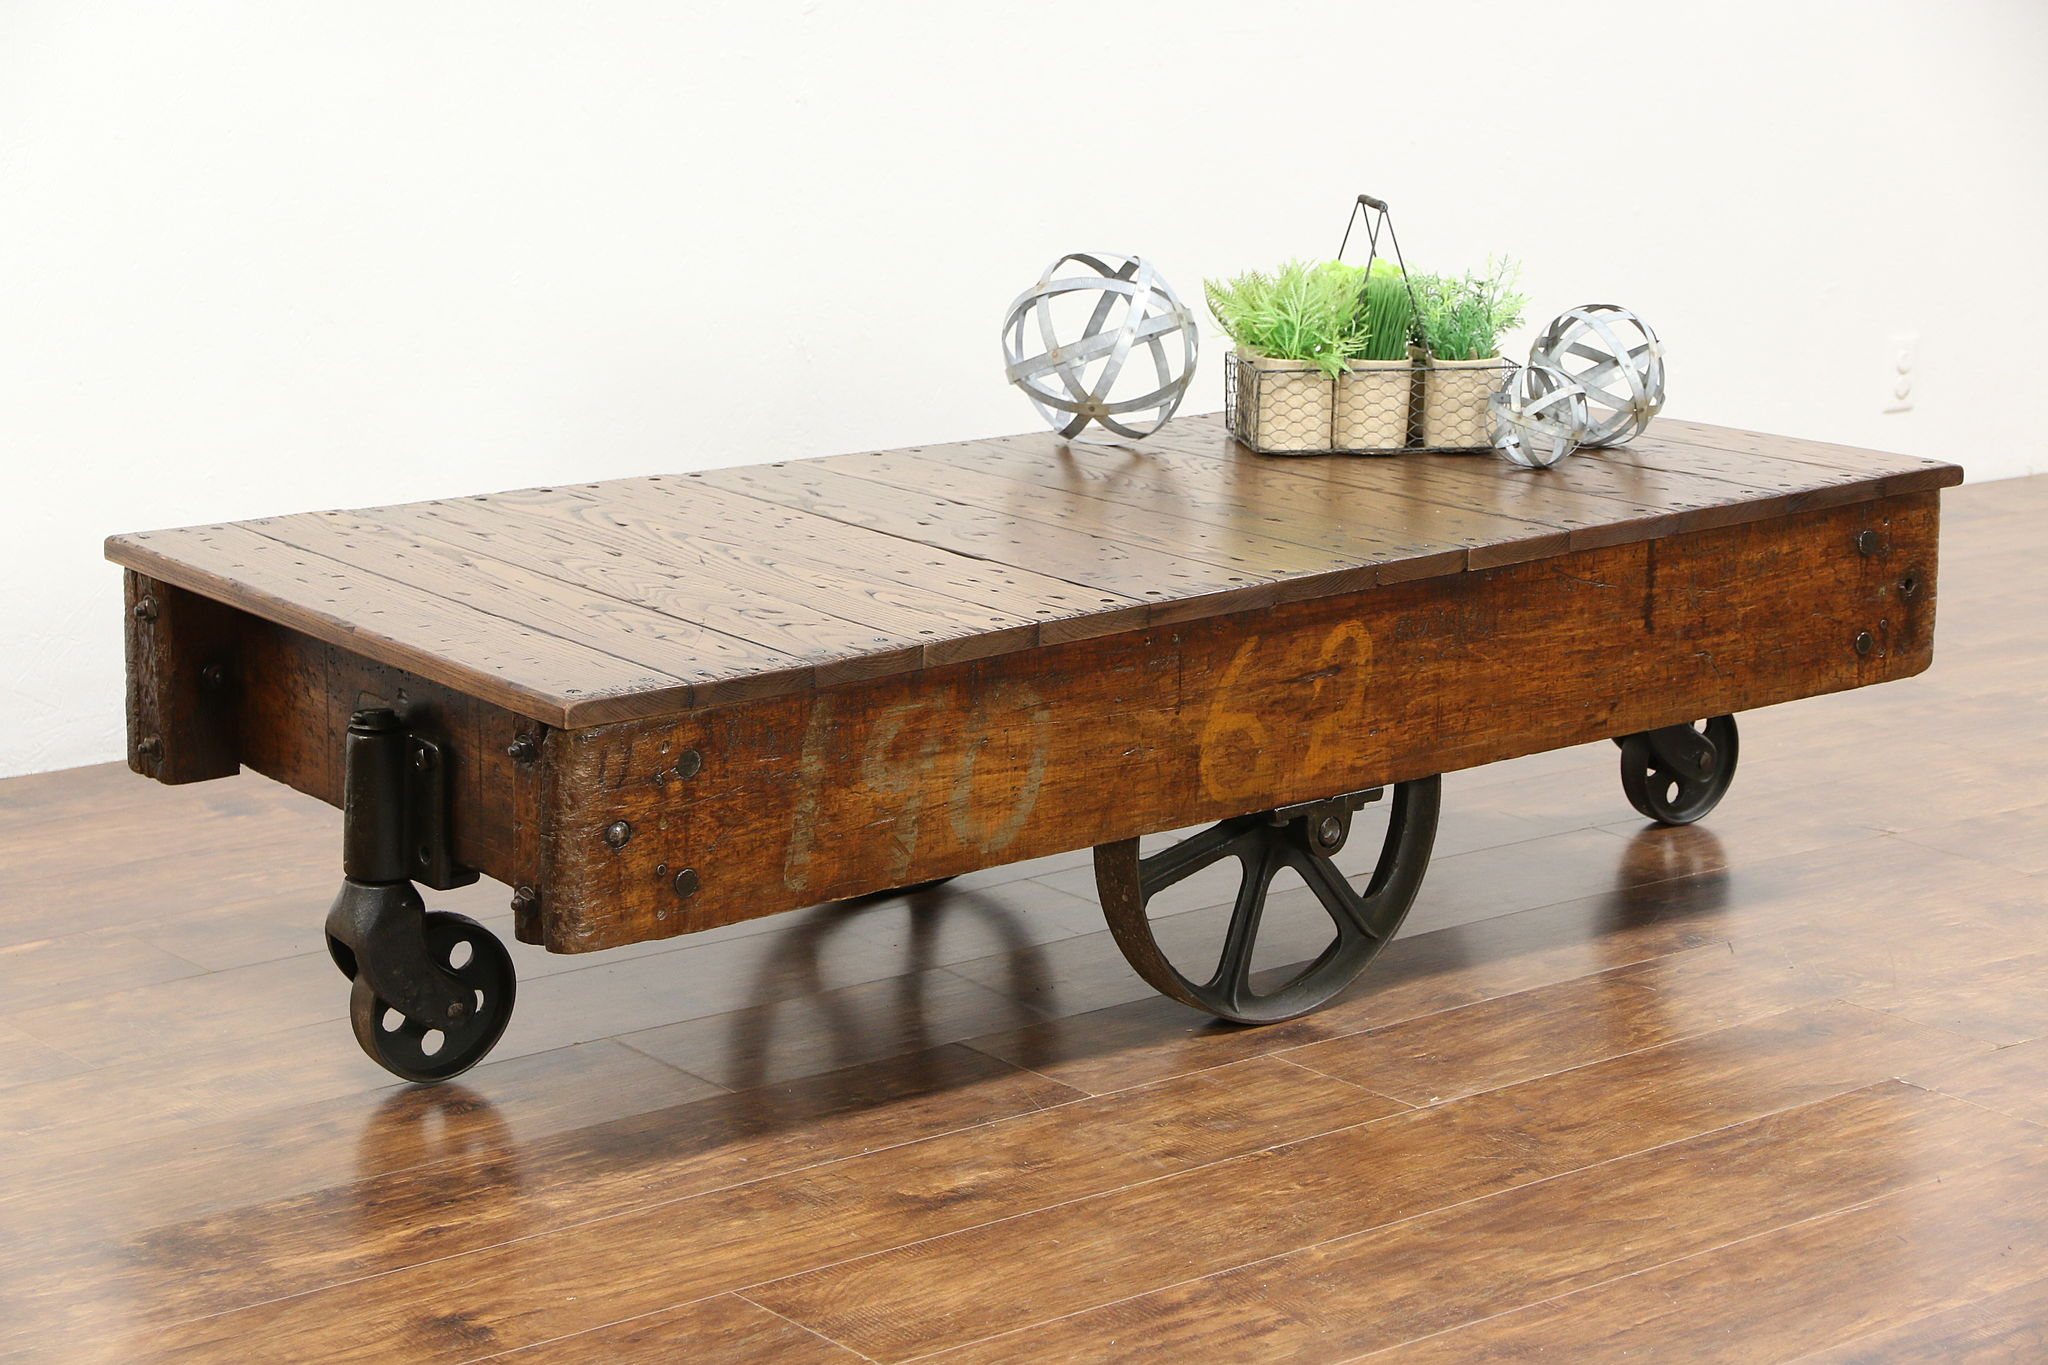 Industrial 1900 s Antique Railroad Oak and Iron Cart or Coffee